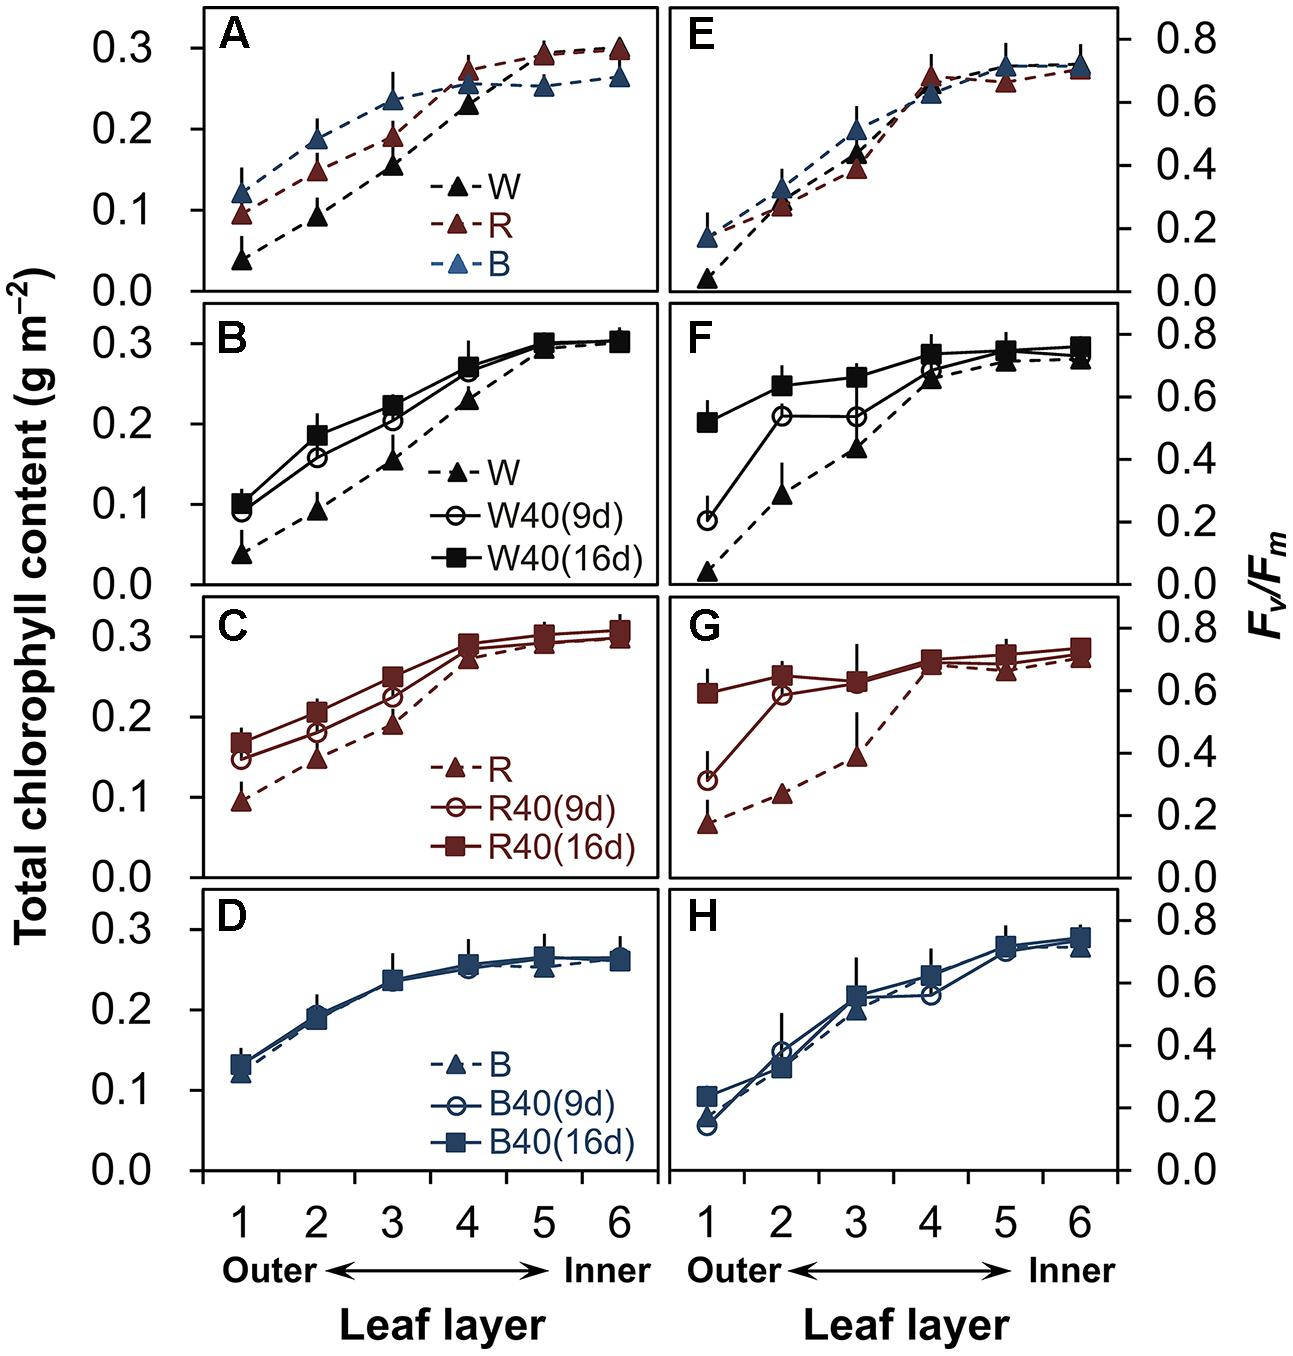 effect of different concentrations of carbon dioxide on the rate of photosynthesis in spinach leafs  Carbon dioxide in photosynthesis in higher concentrations, more carbon is incorporated into carbohydrate, therefore increasing the rate of photosynthesis in.